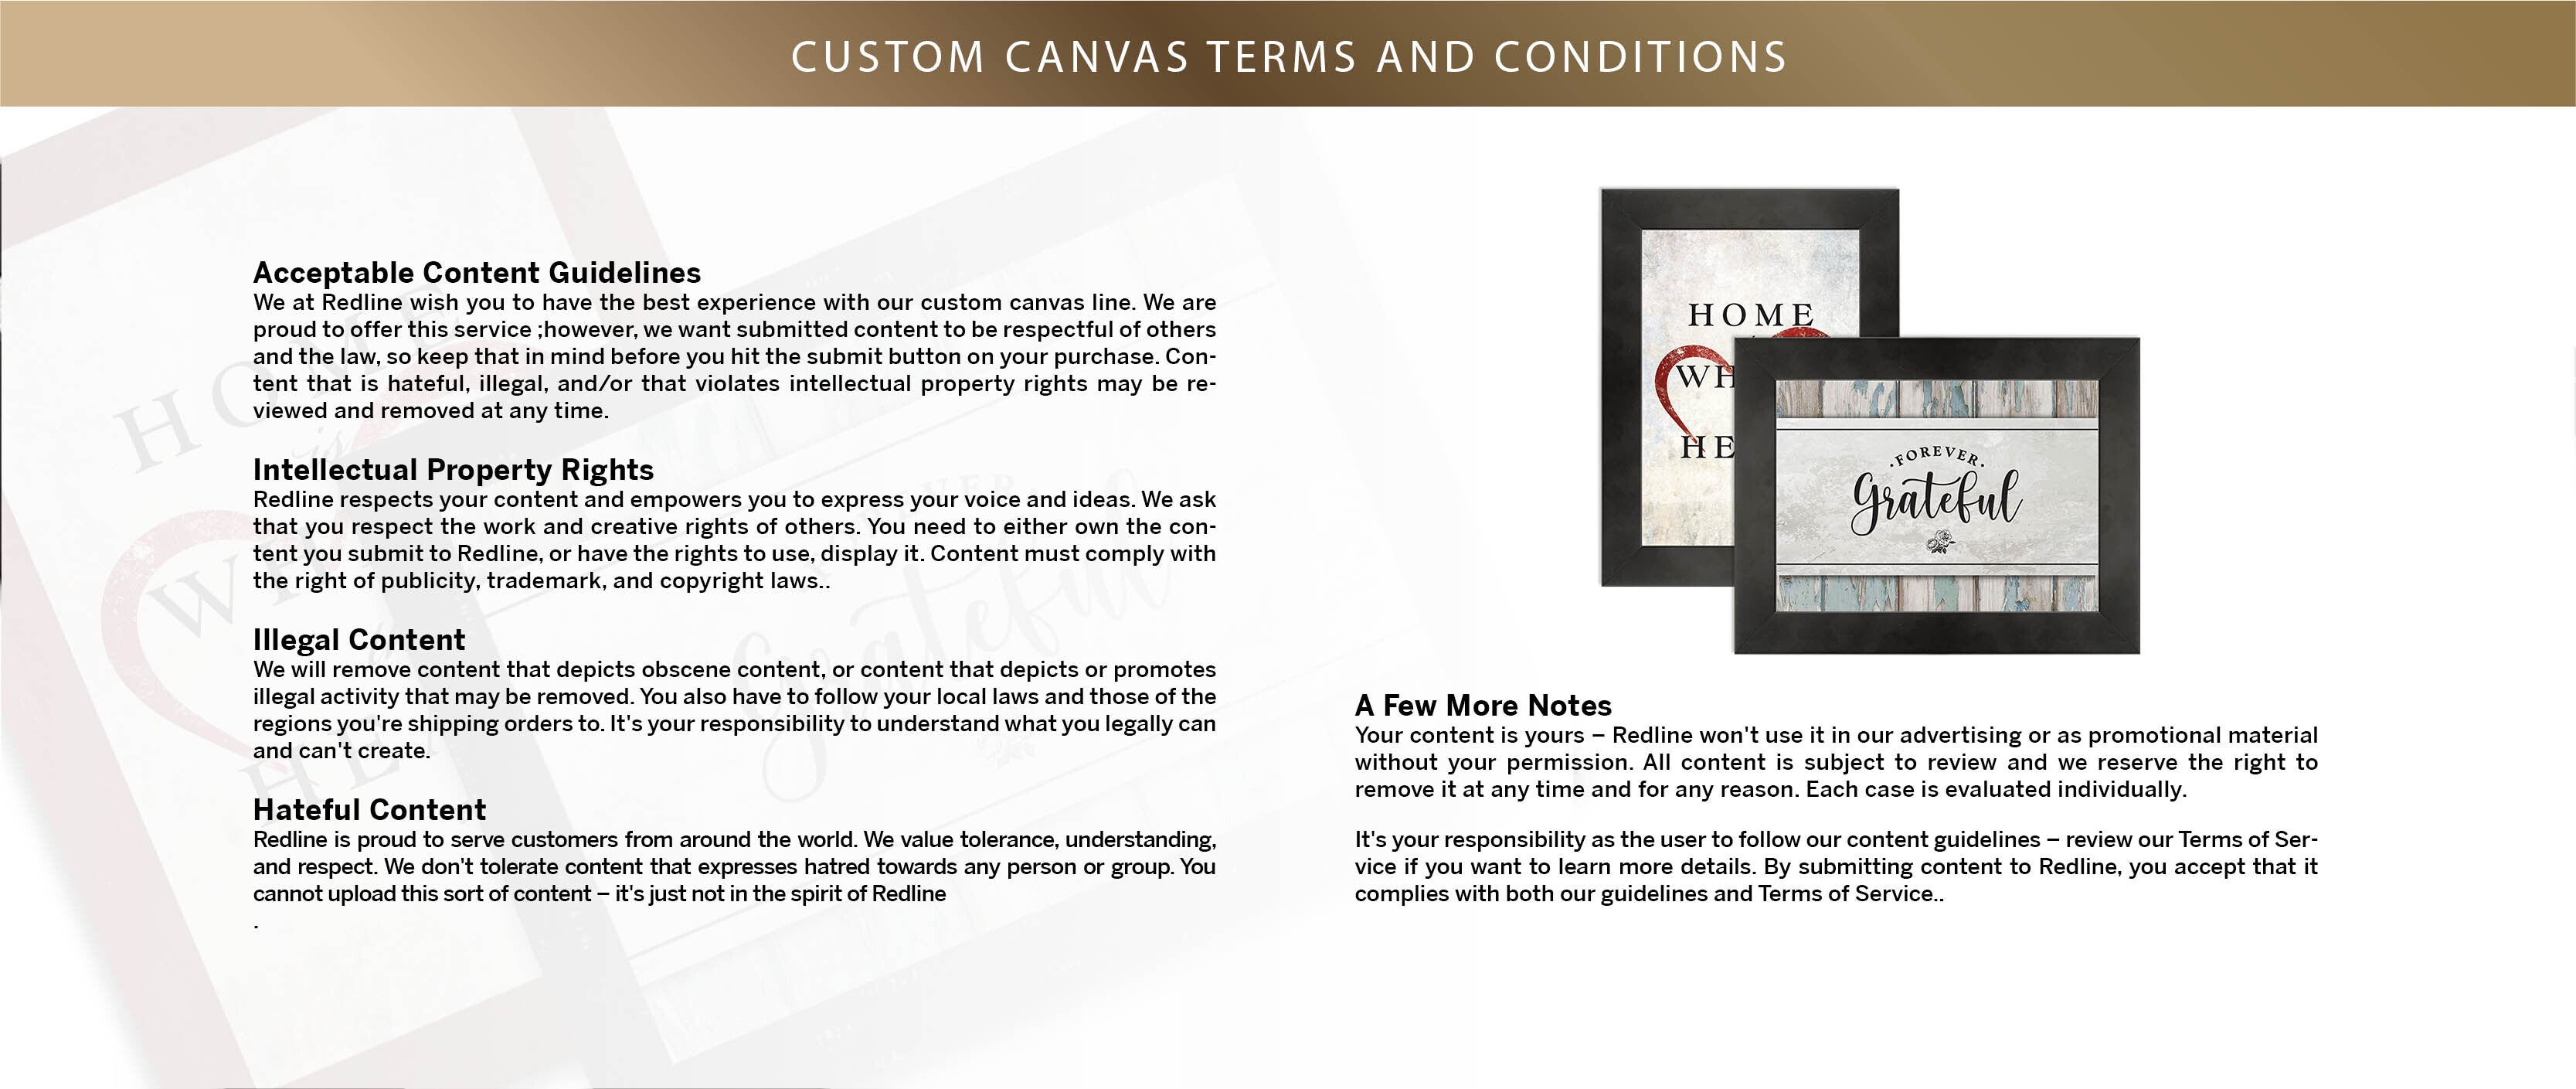 customcanvas